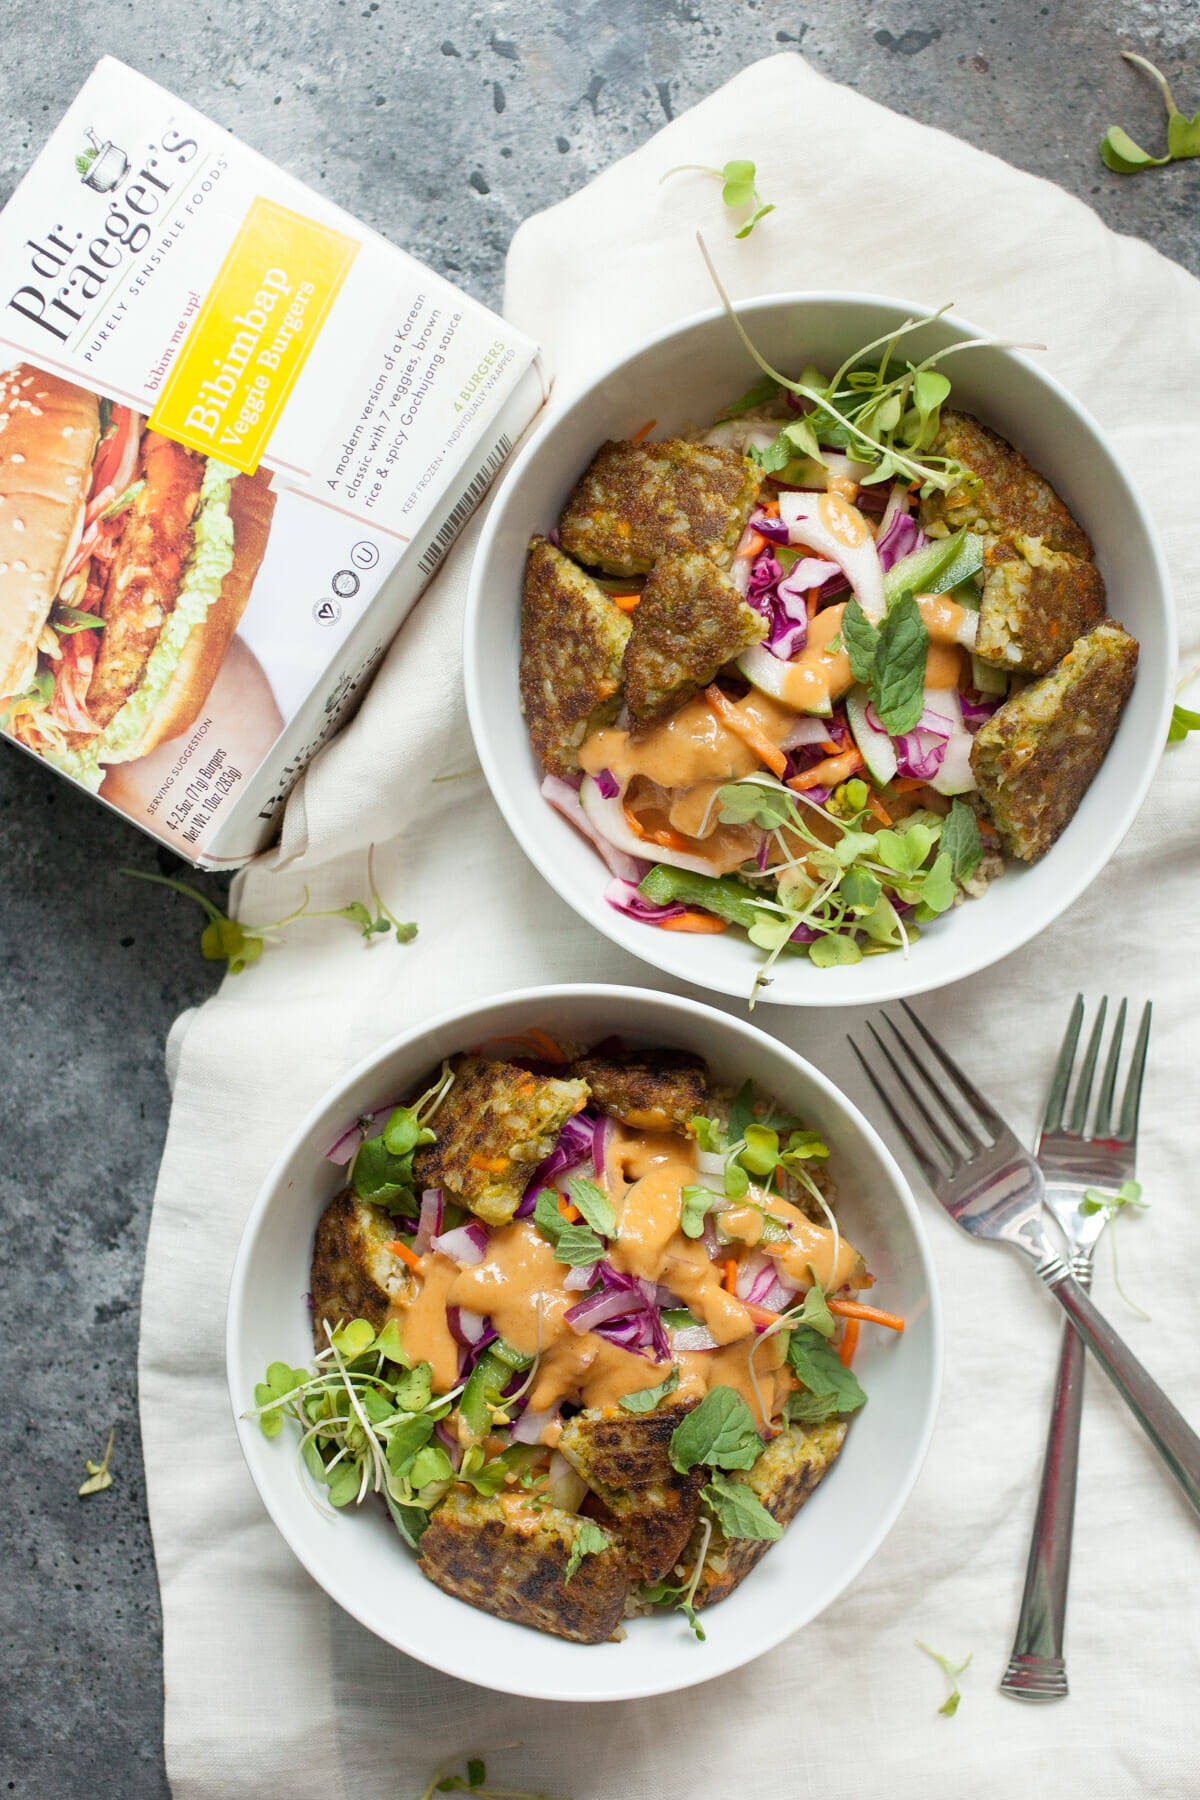 Easy Banh Mi Bowls: Delicious and easy bowls with loads of veggies and a spicy peanut sauce. YUM! | macheesmo.com